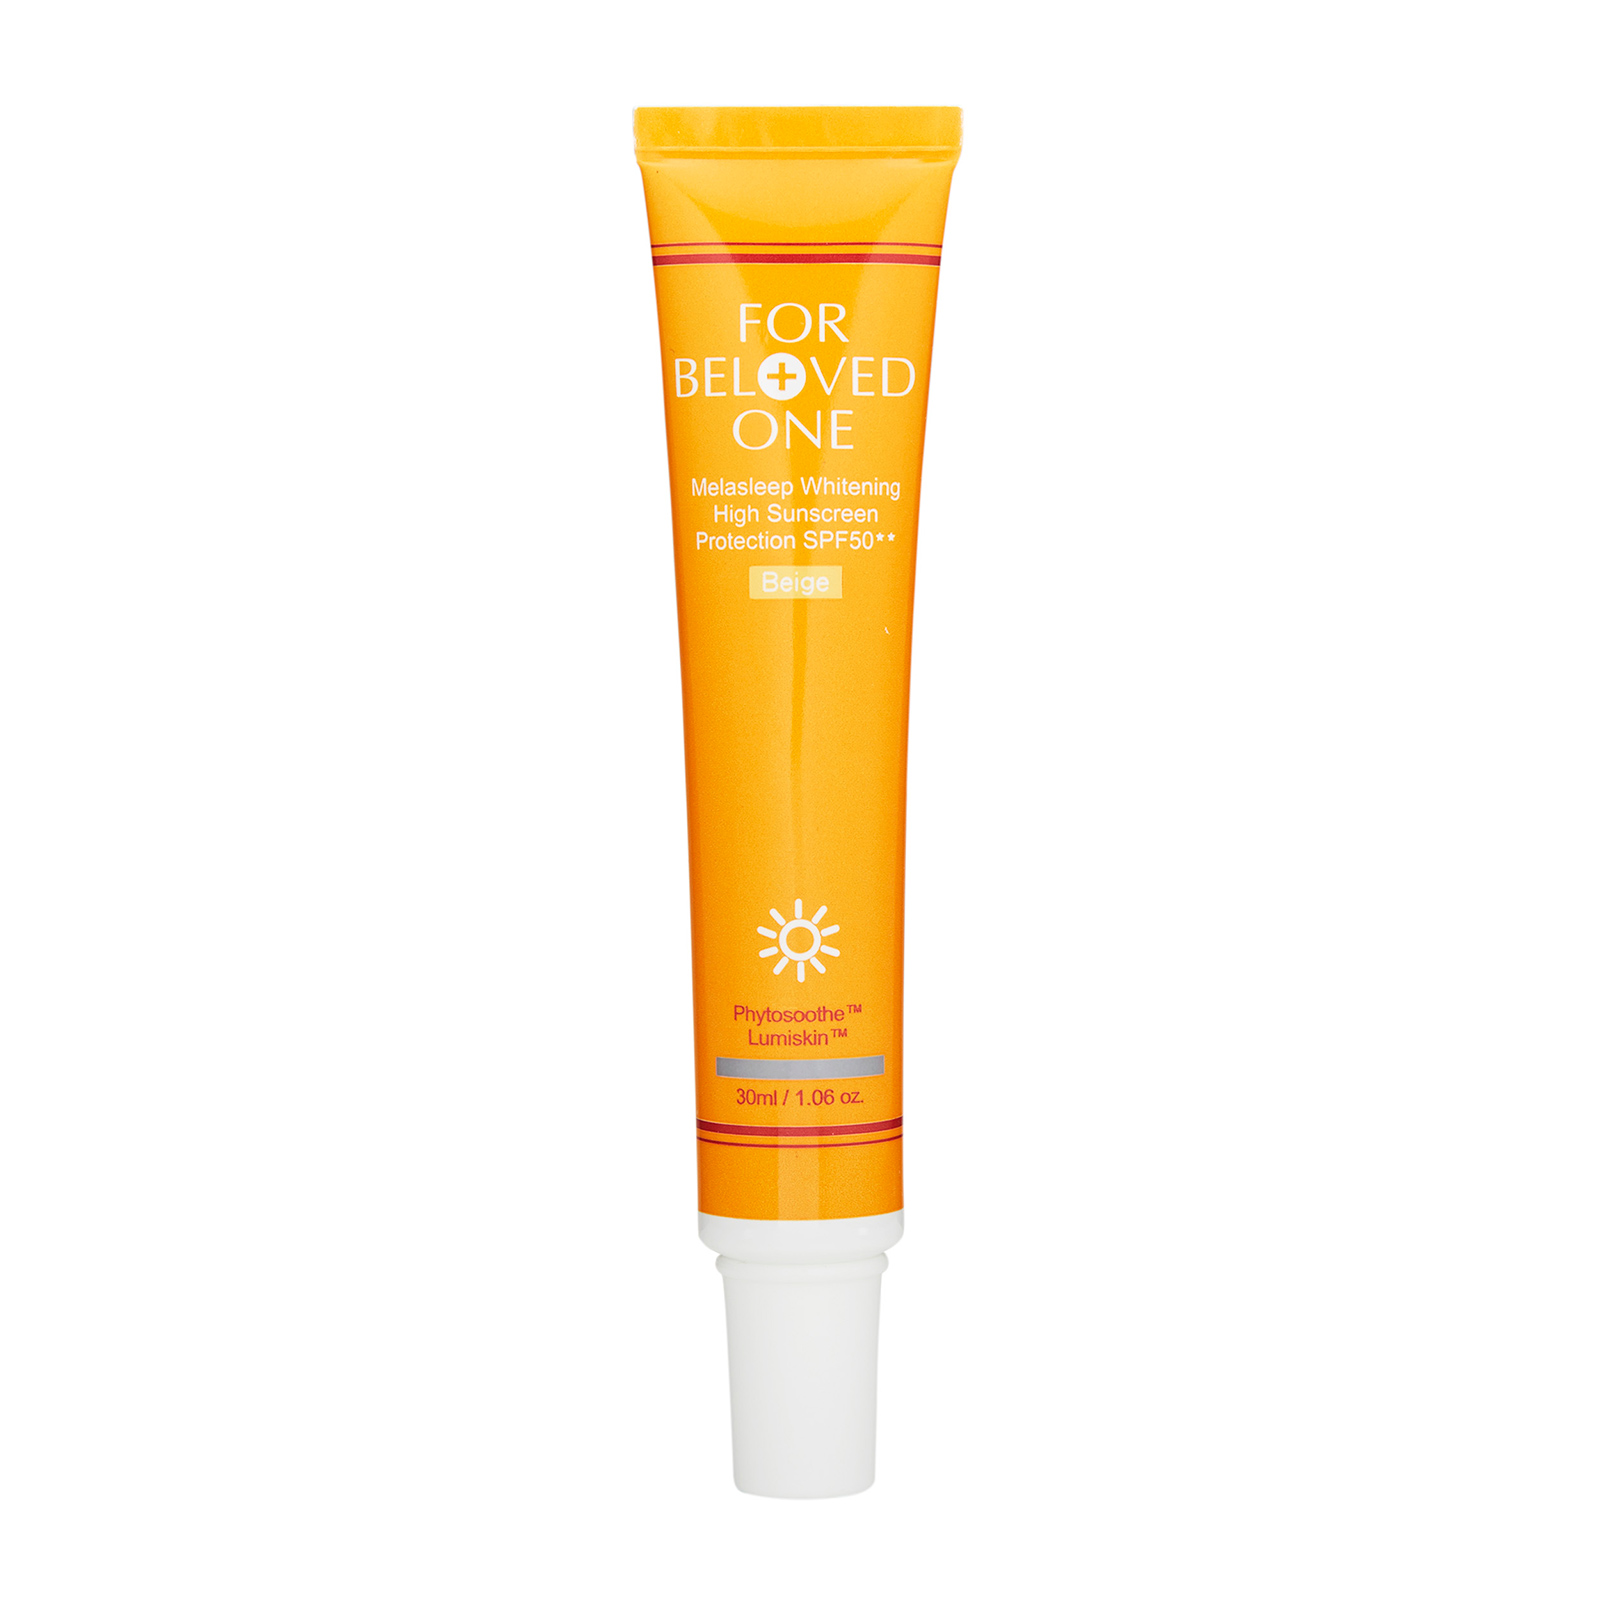 For Beloved One Melasleep Whitening  High Sunscreen Protection SPF50++ Beige, 1.06oz, 30ml